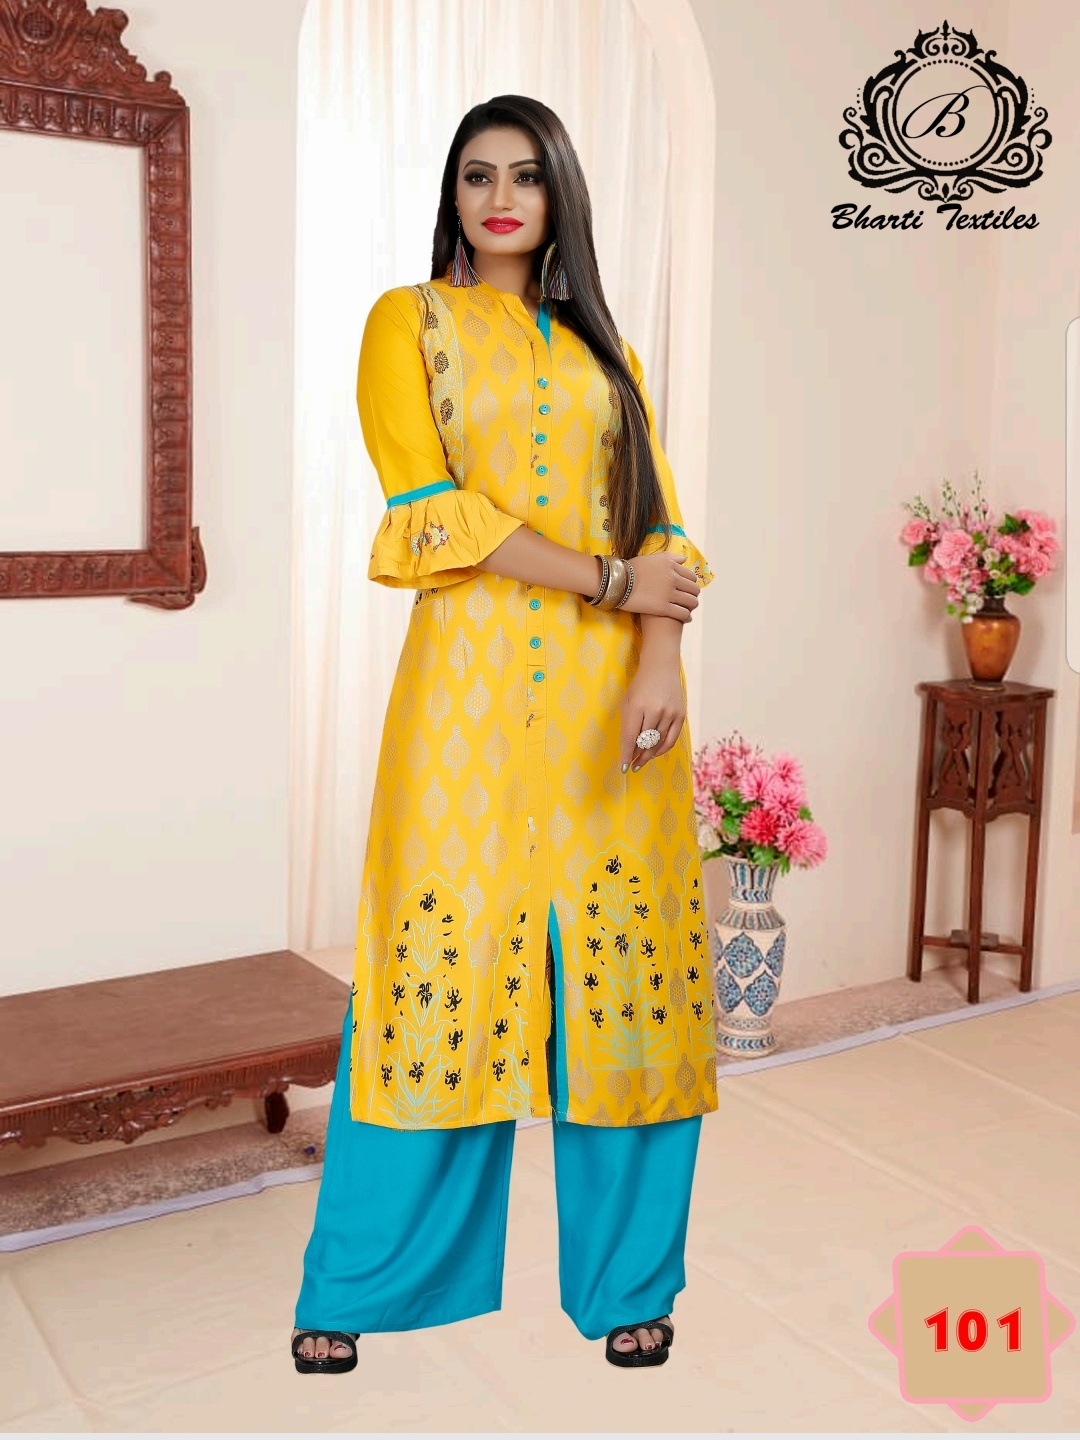 Bharti-Textile-Lovely-13